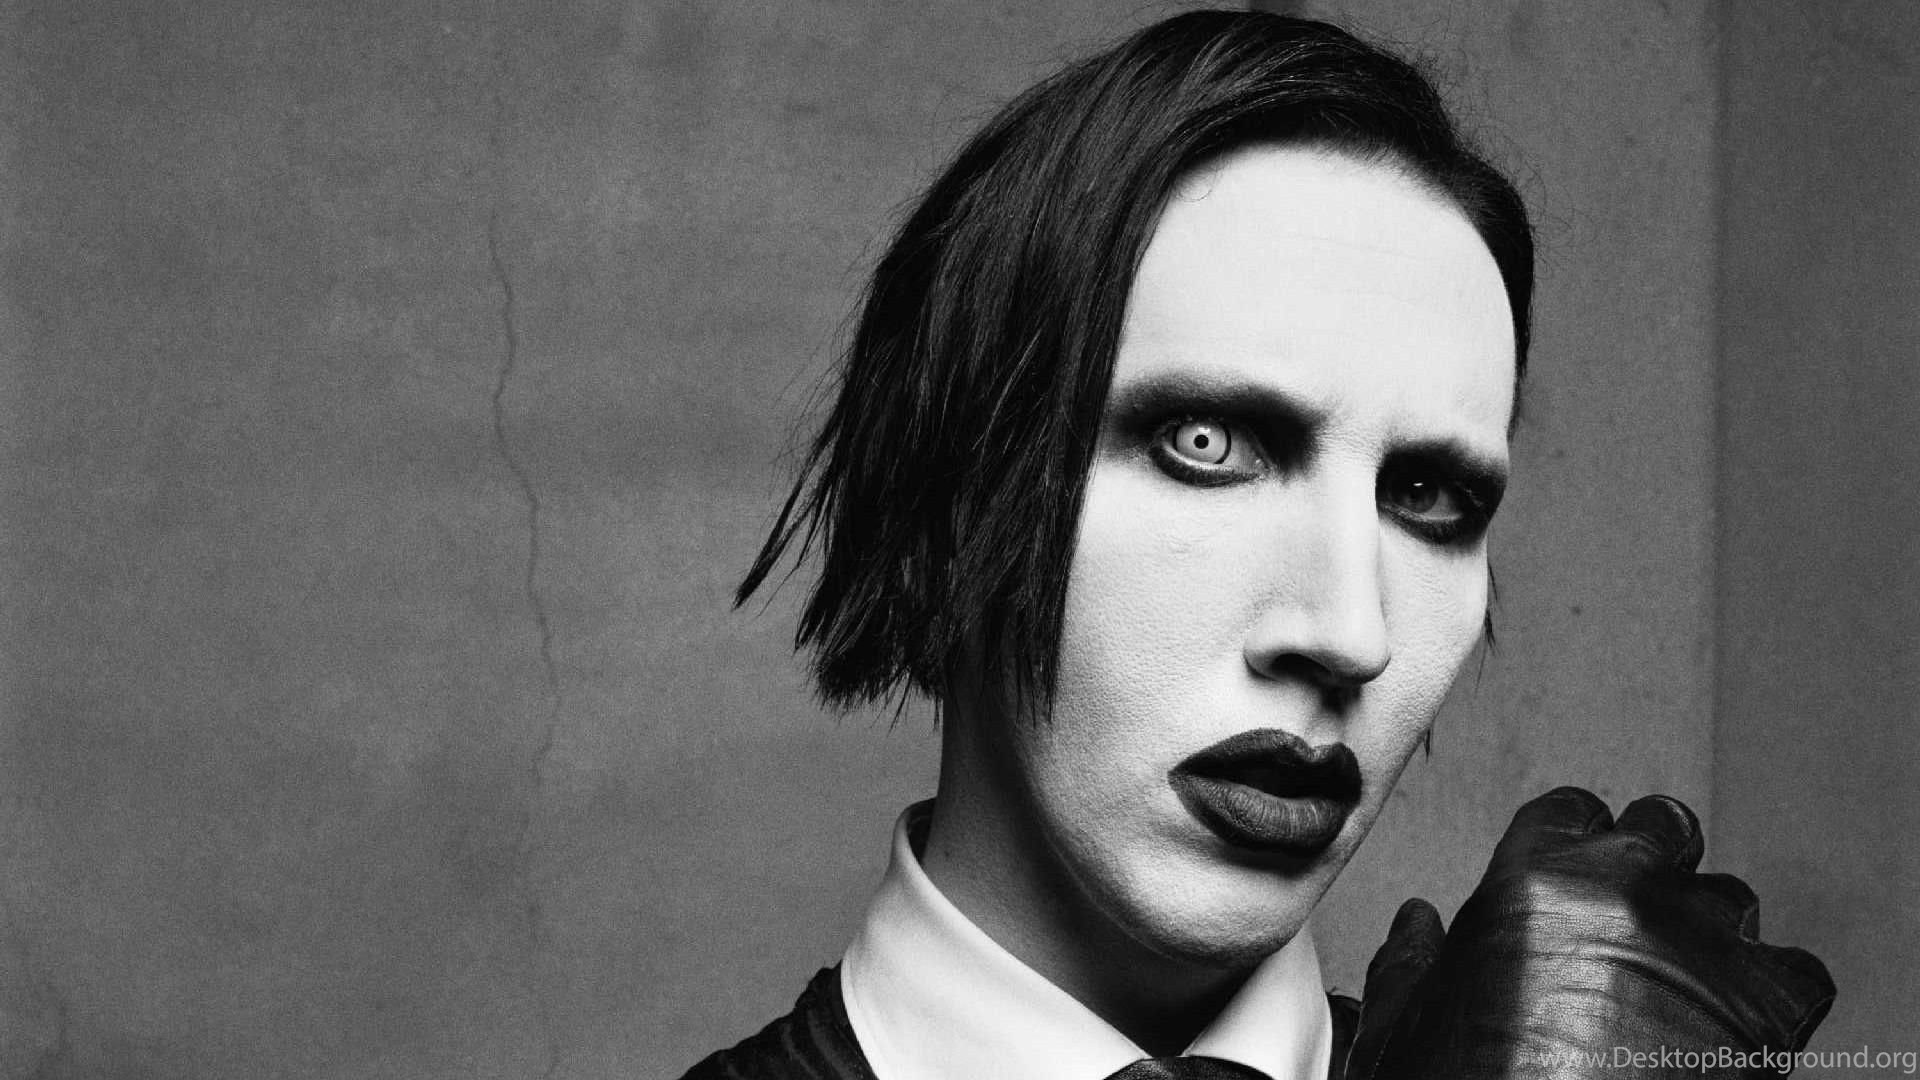 Hd Quality Marilyn Manson Wallpapers Widescreen 14 Music Celebrity